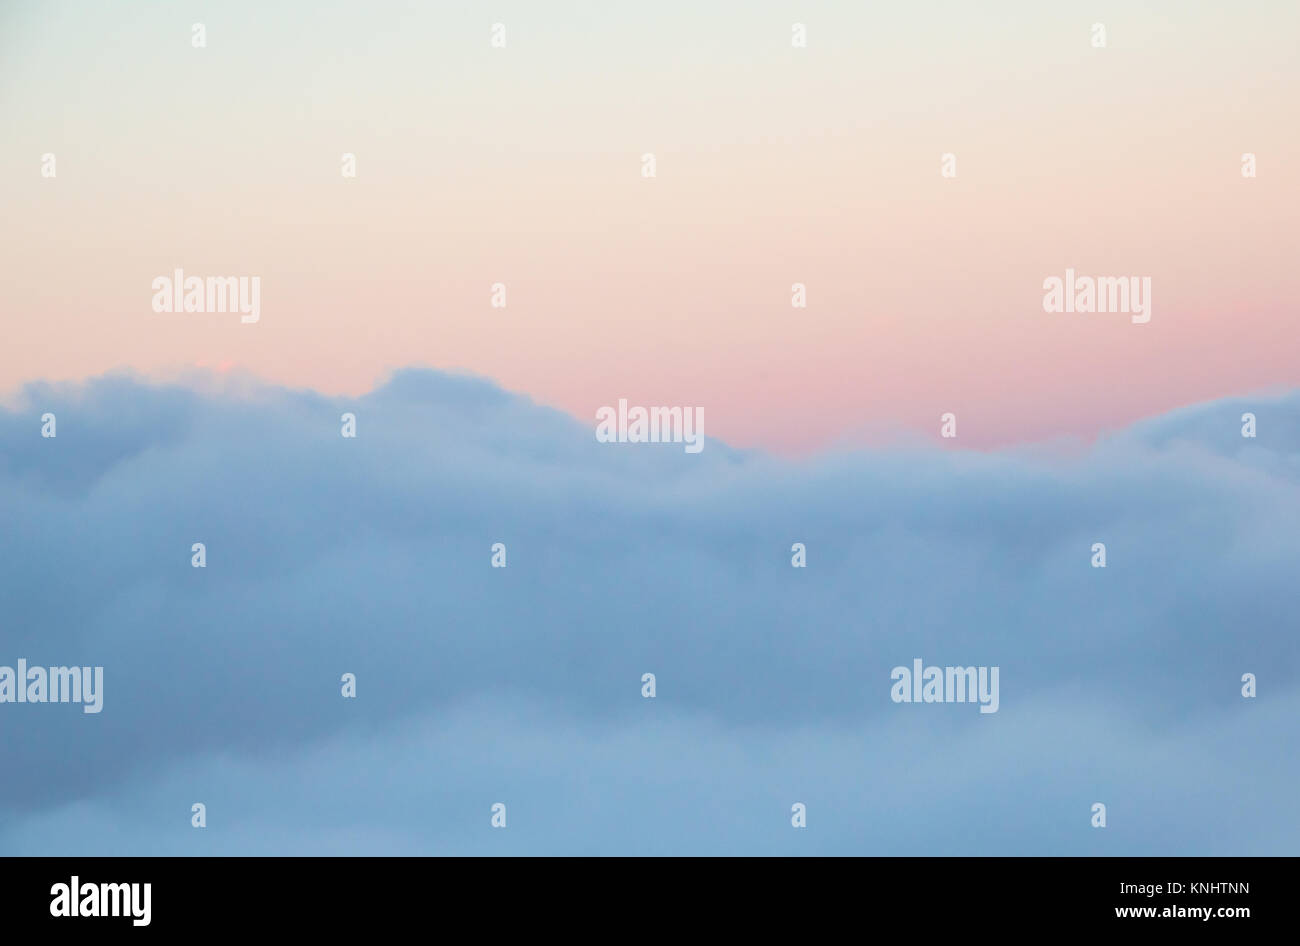 horizontal background of cloud bank and beautiful morning sky above - Stock Image